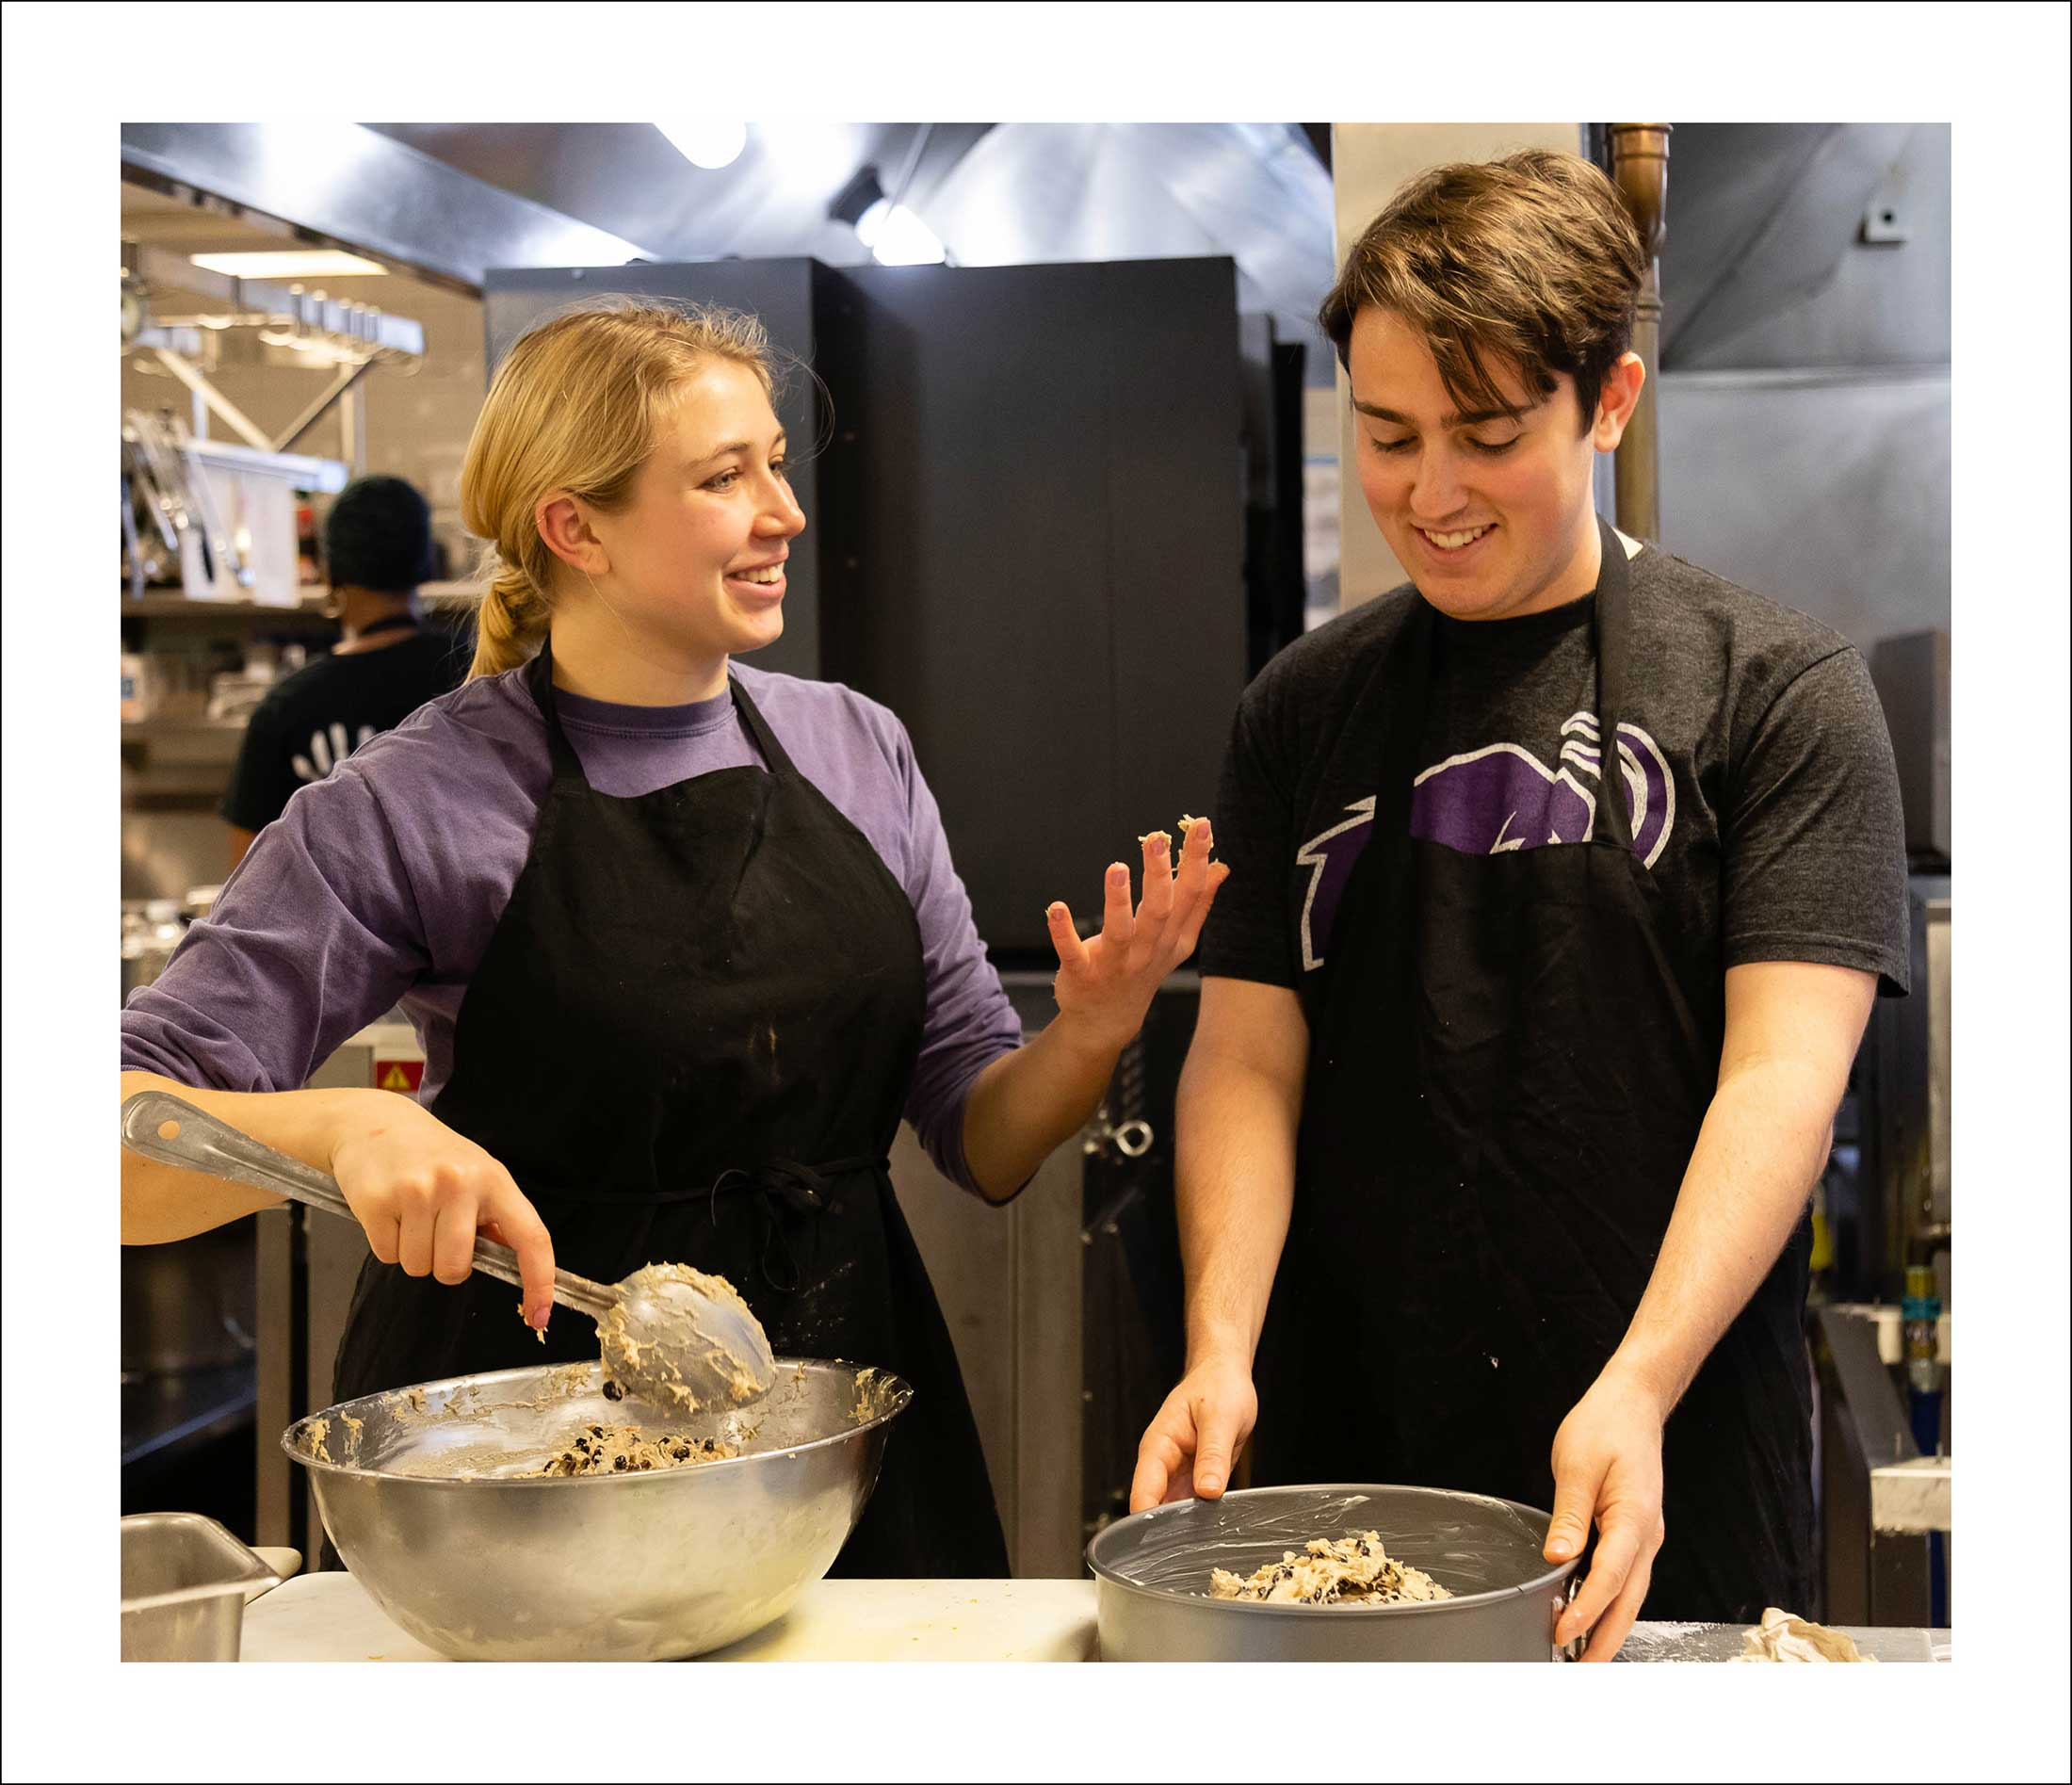 A young man and woman wearing black aprons stir ingrediants in large silver bowls